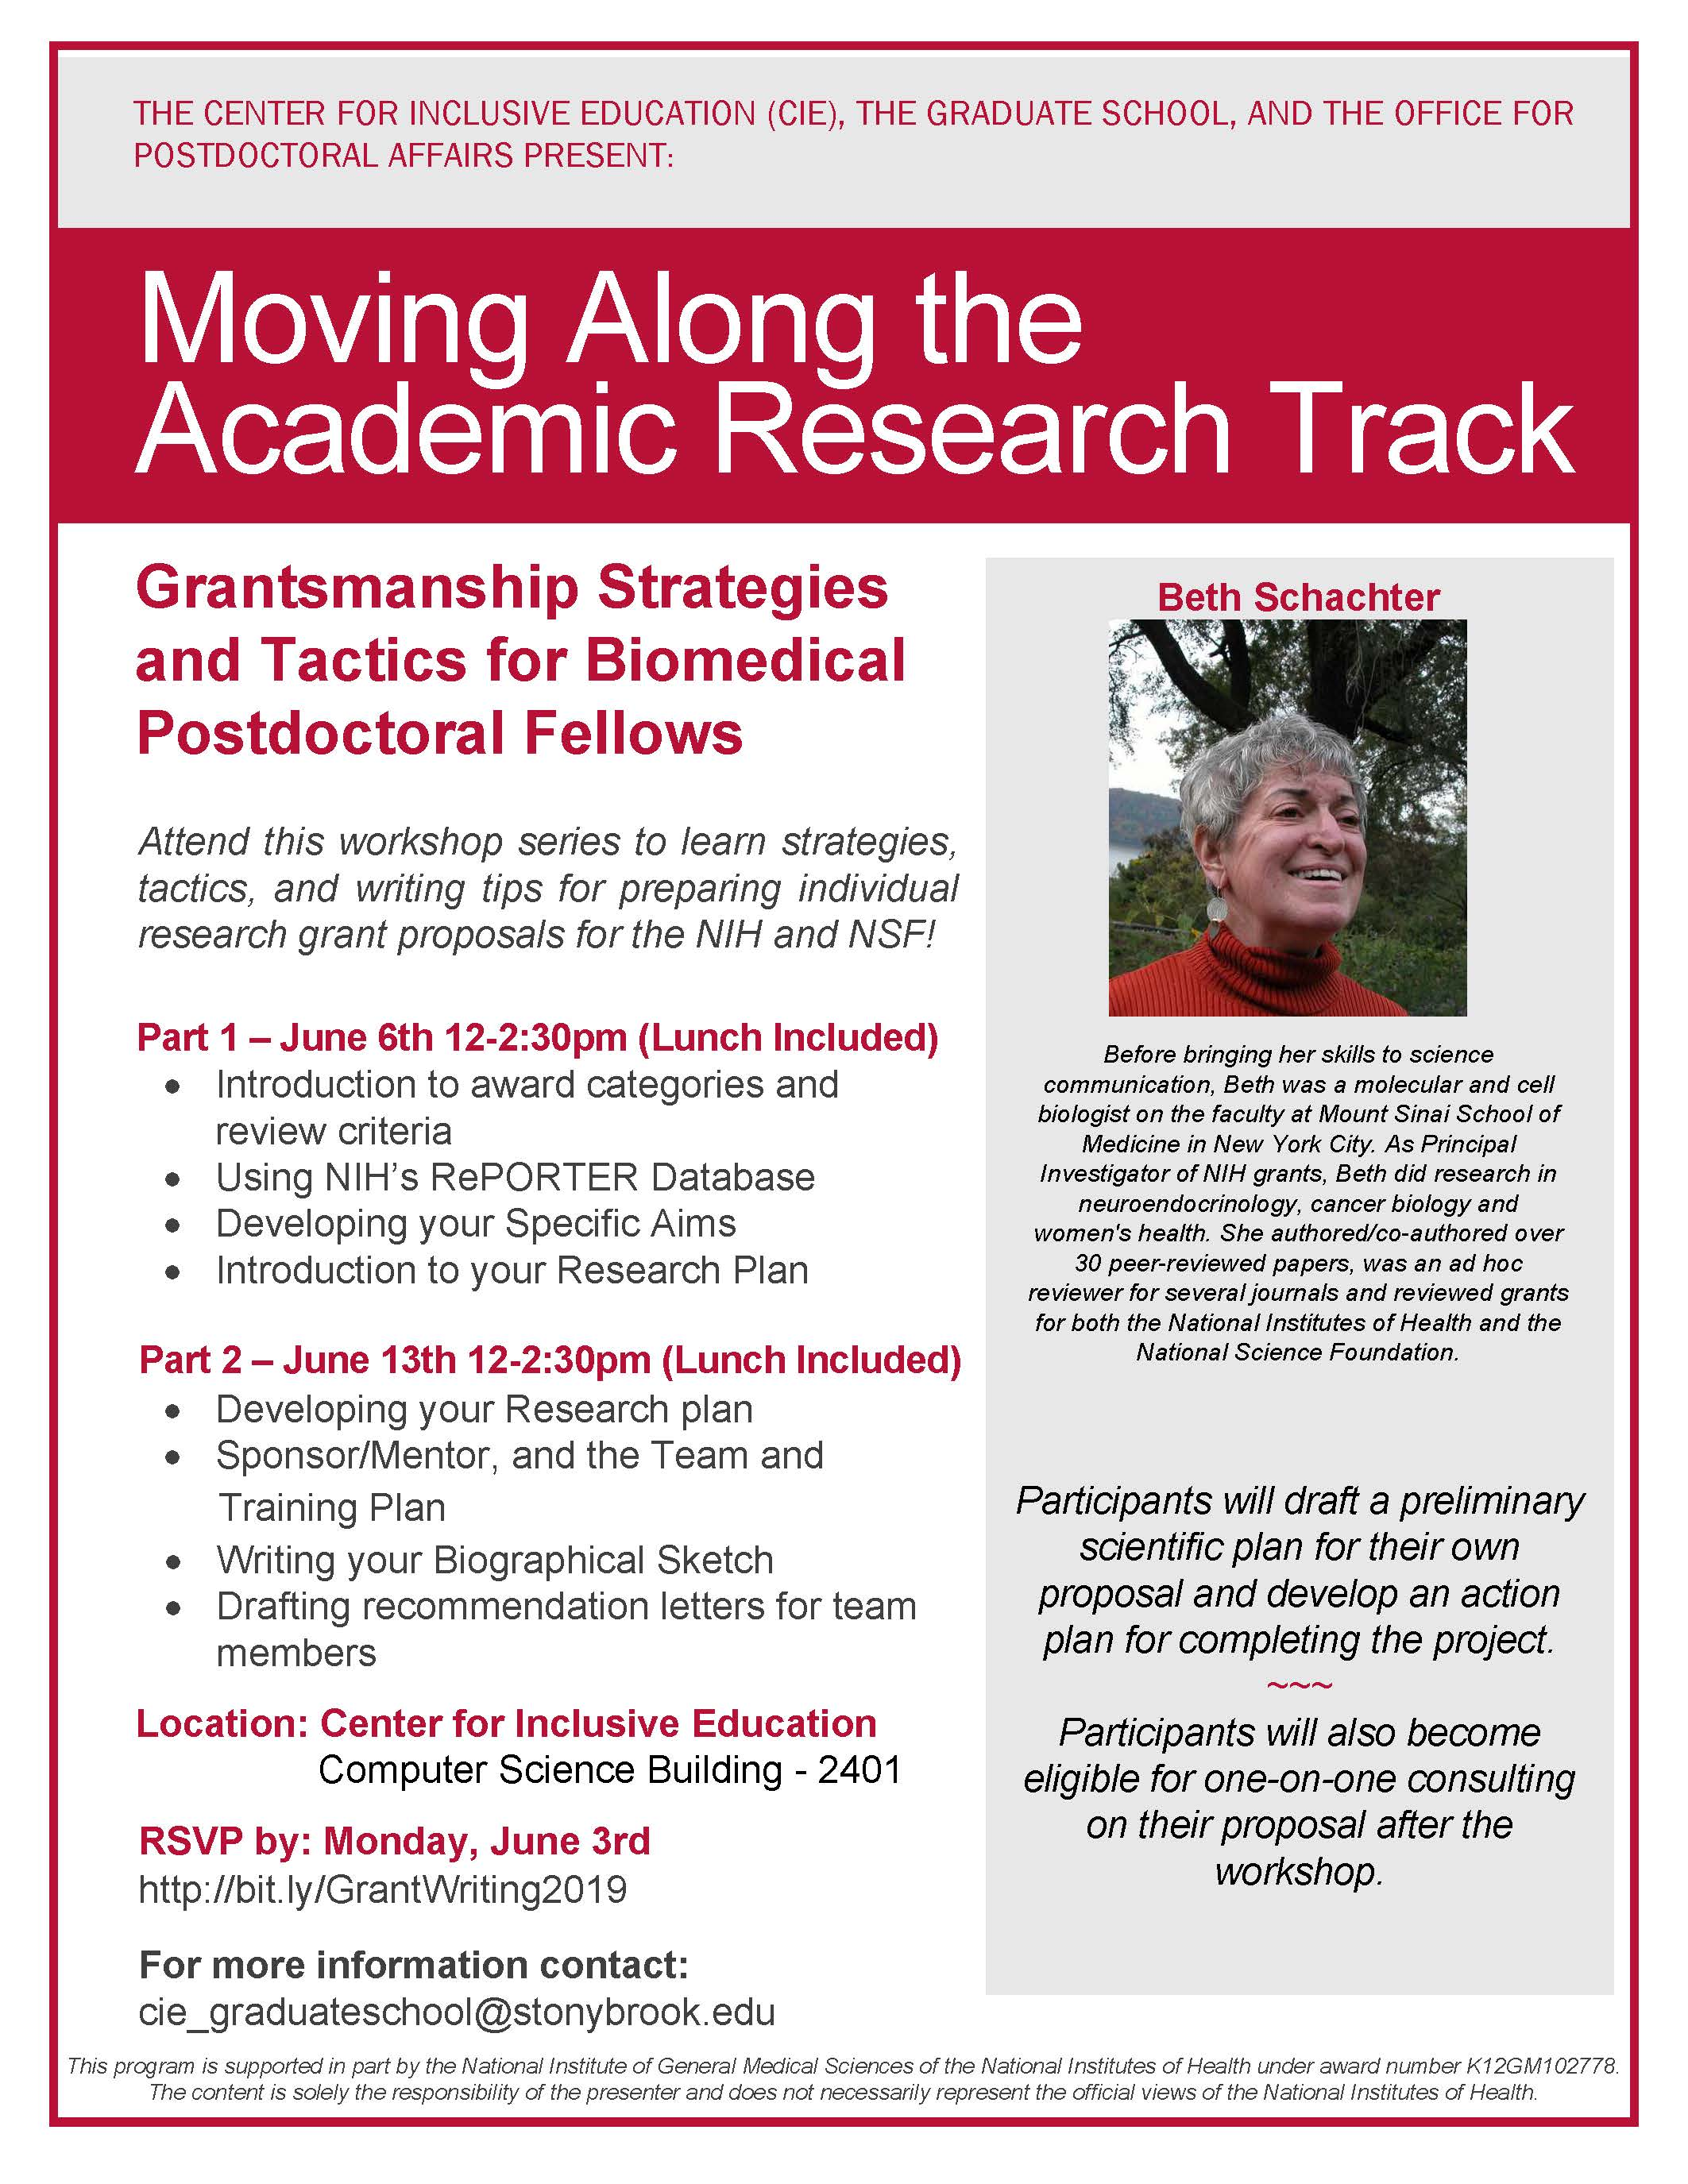 Graduate School - Grant Writing Workshop - Grantsmanship